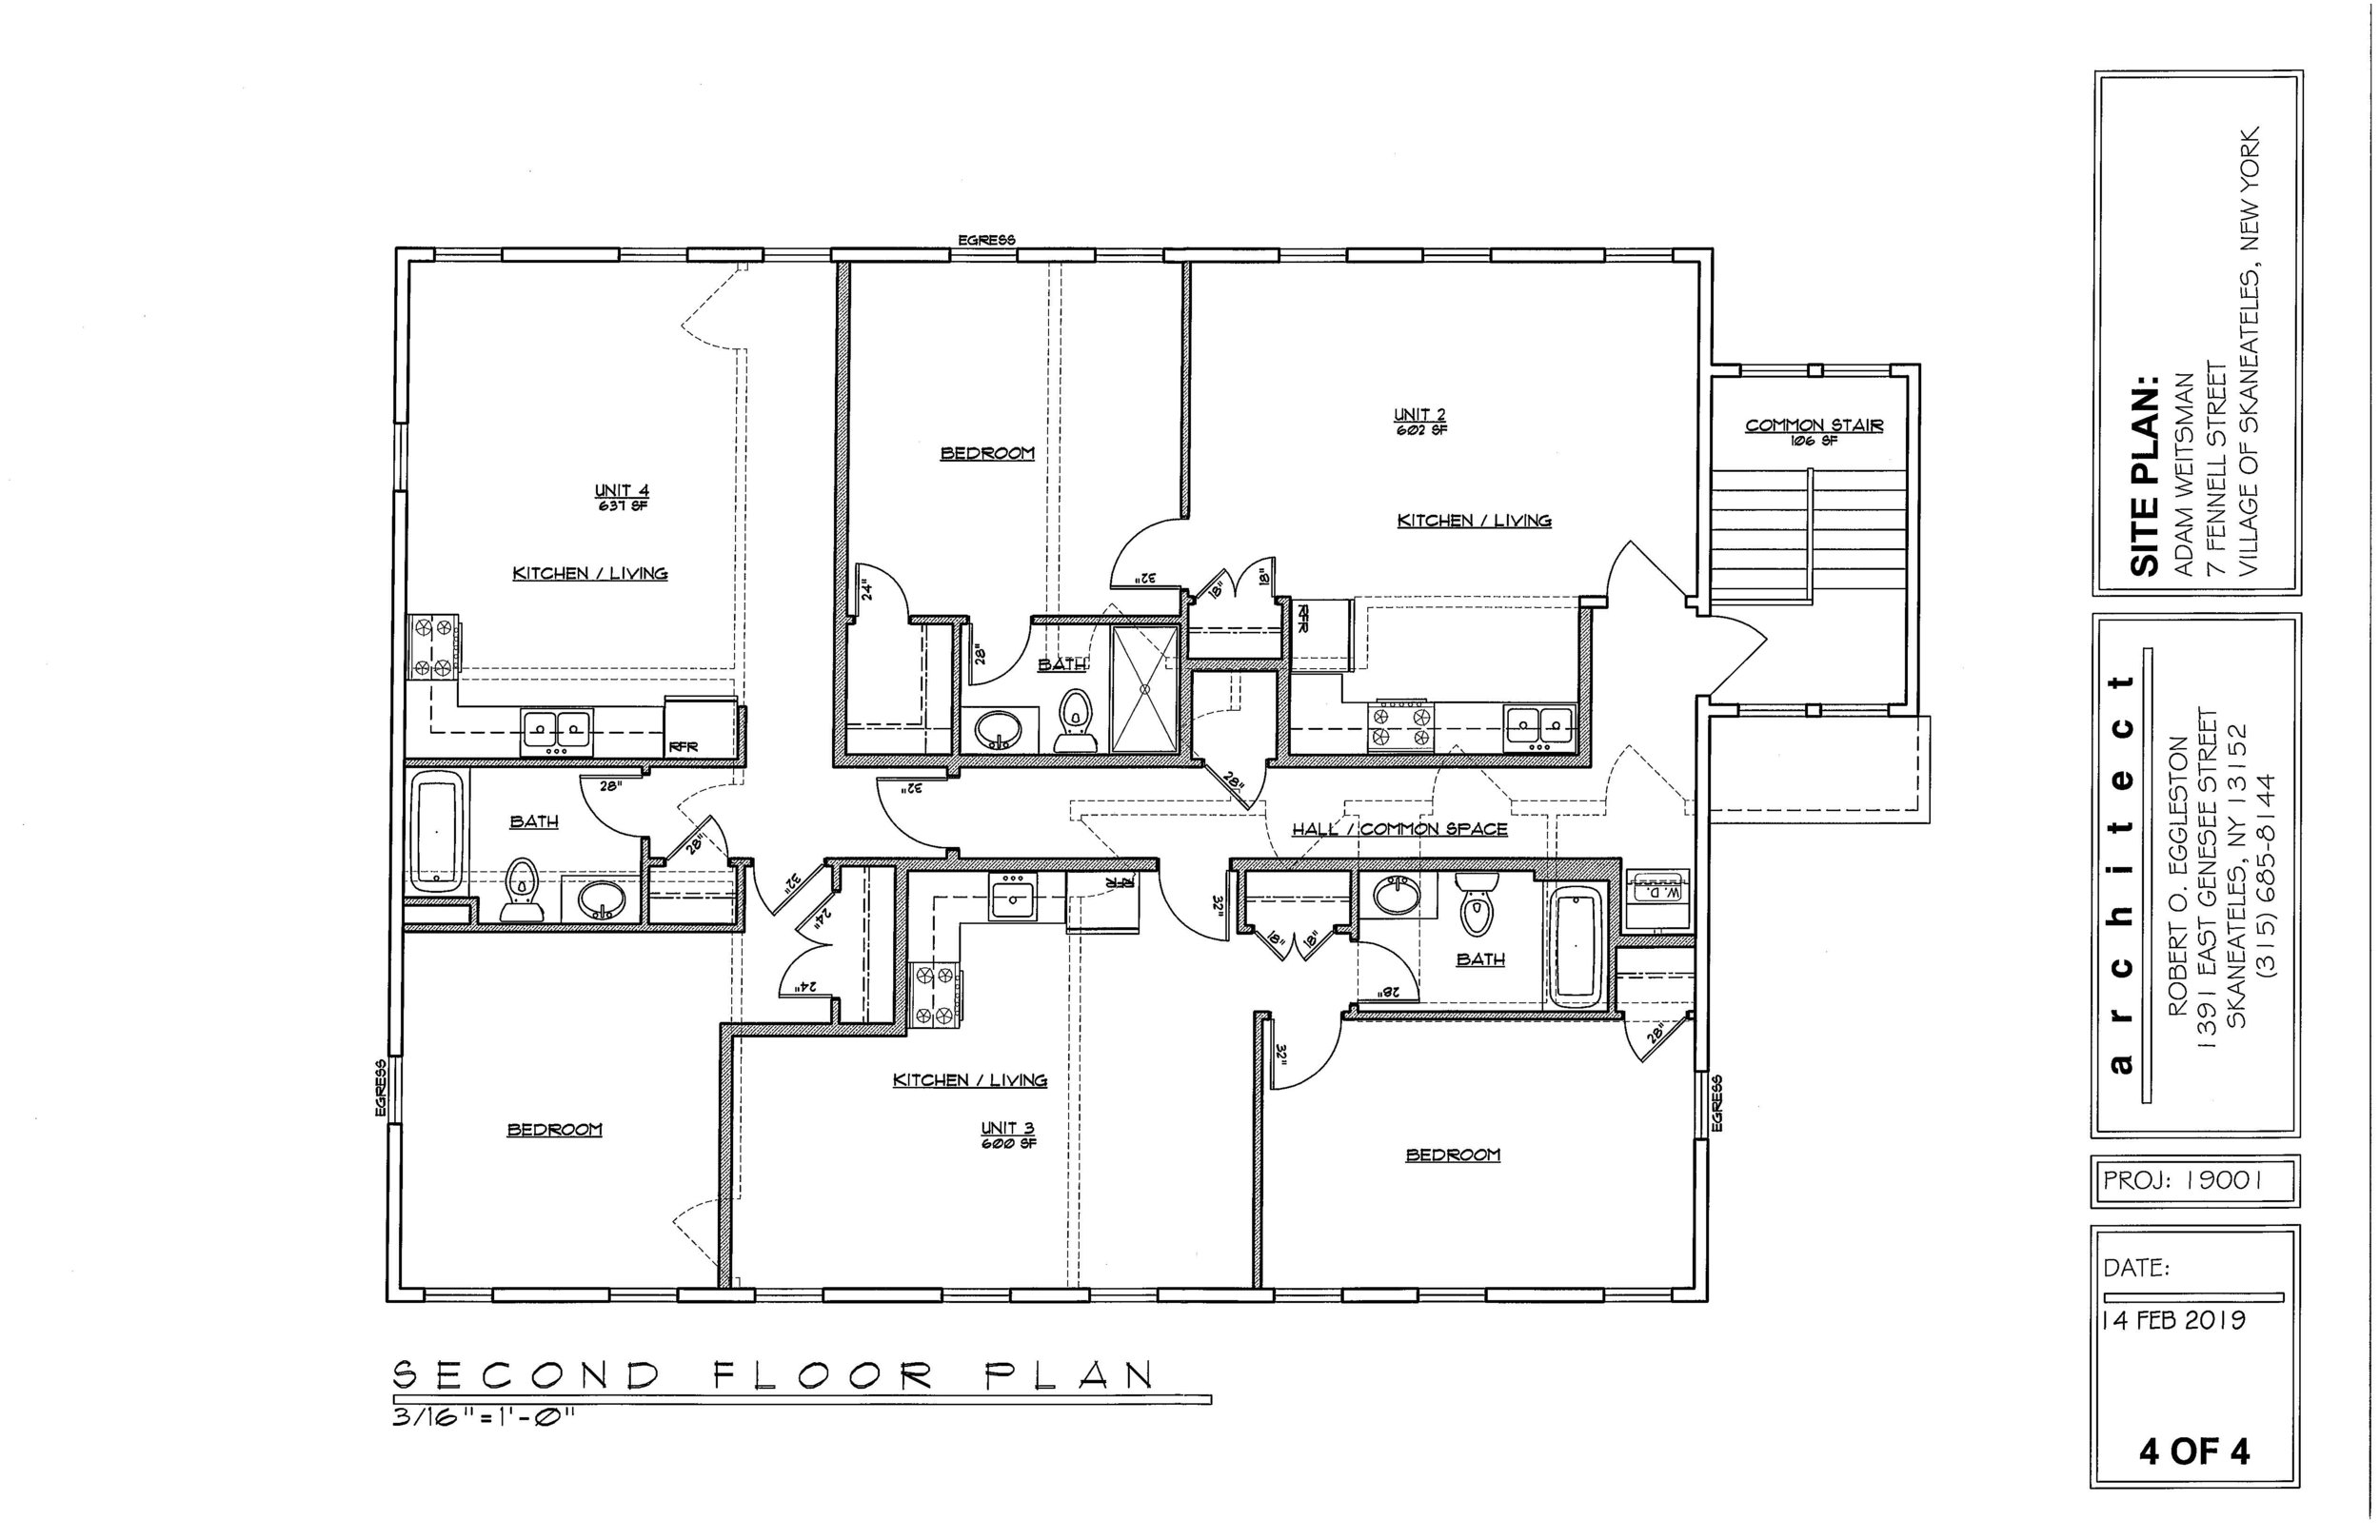 PROPOSED PLAN FOR RE-DEVELOPMENT - 3 APARTMENTS ON FLOOR 2